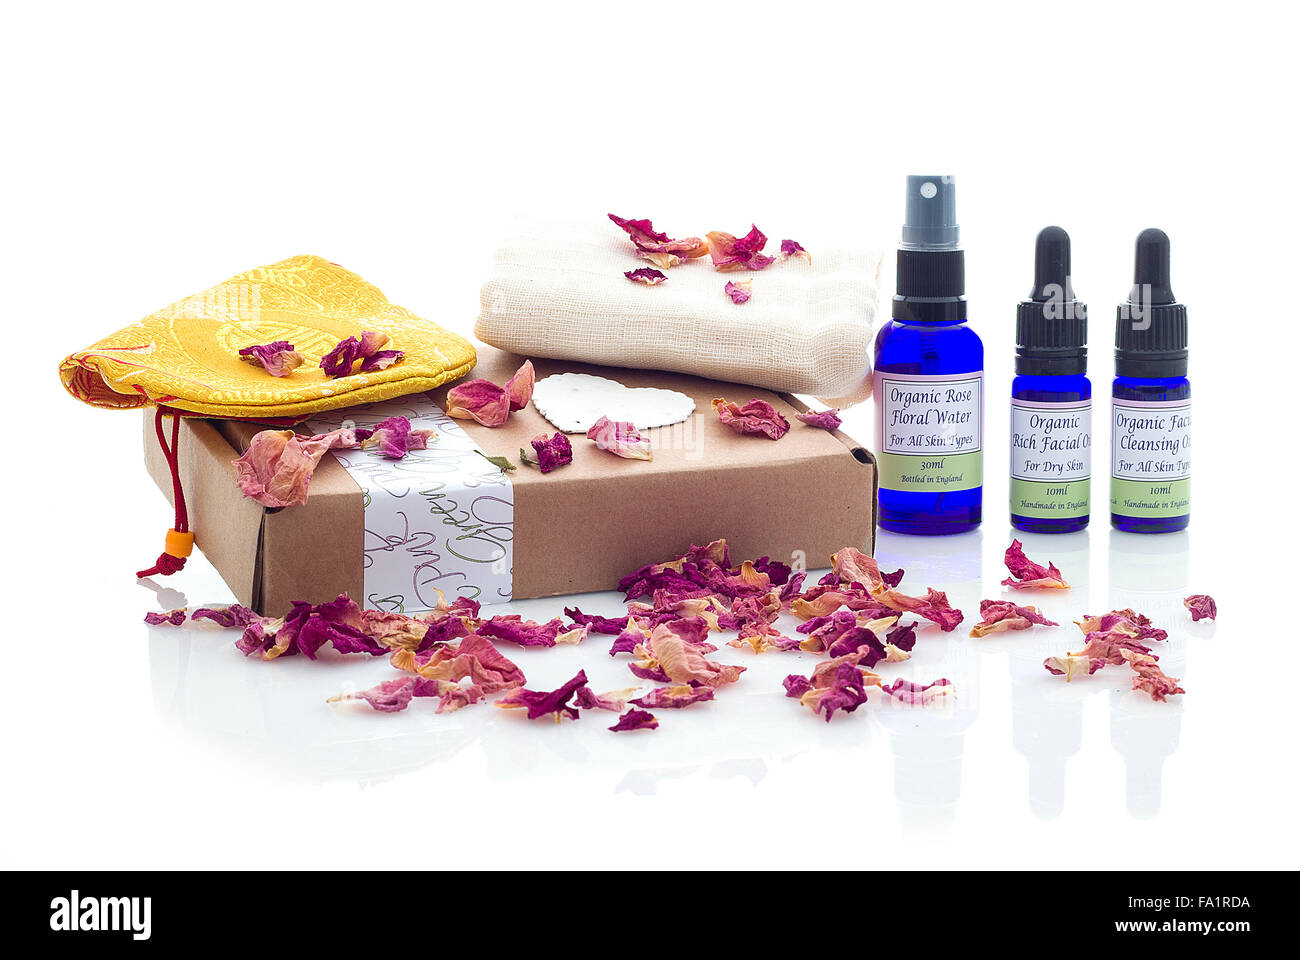 Pink&Green Handmade Natural Facial Skincare Products on a white background - Stock Image